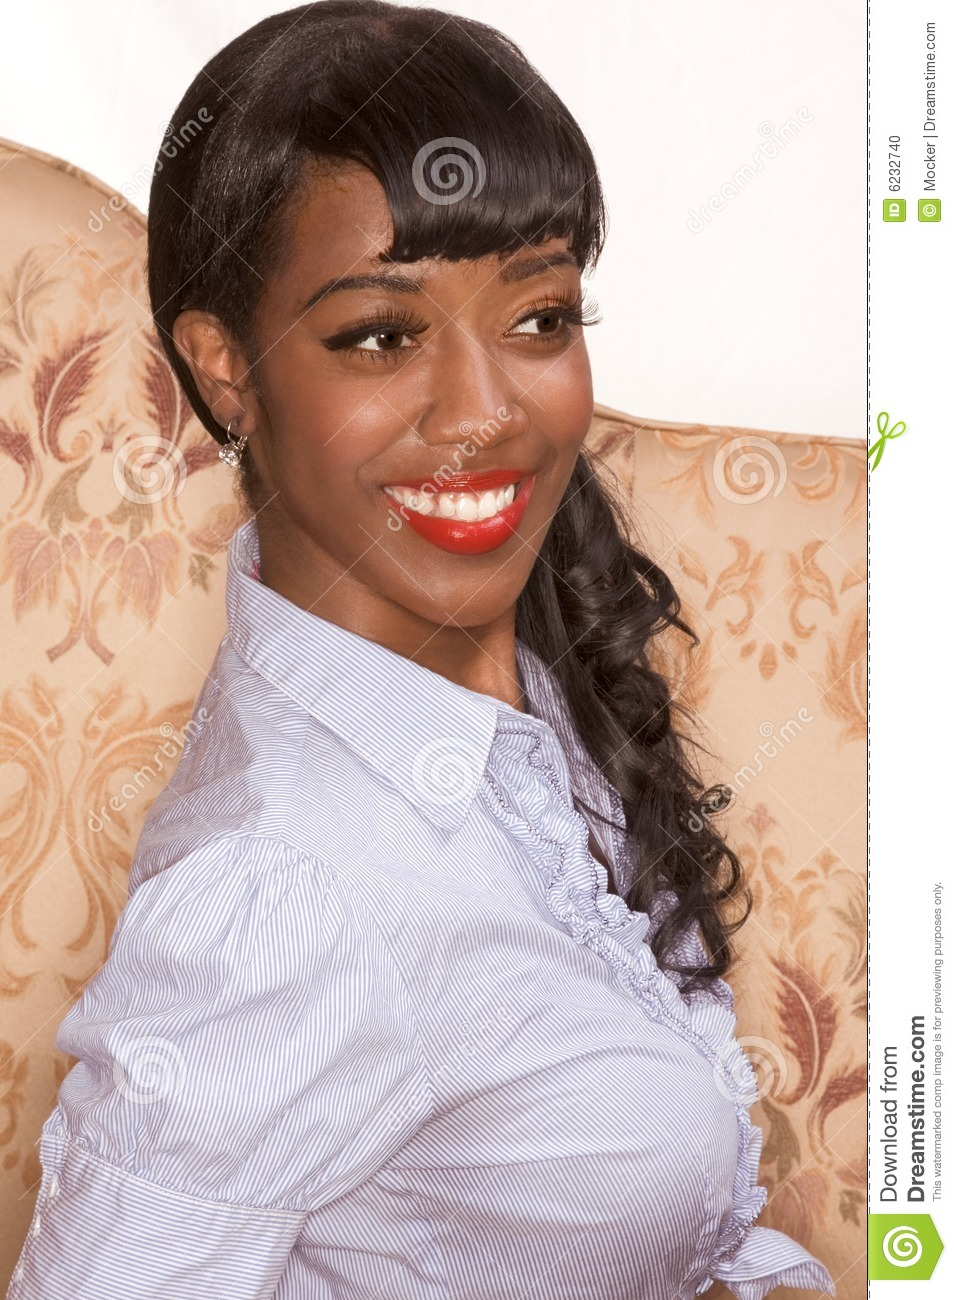 Black Girls Killing It: Smiling Black Girl Portrait In Retro Style Stock Photo